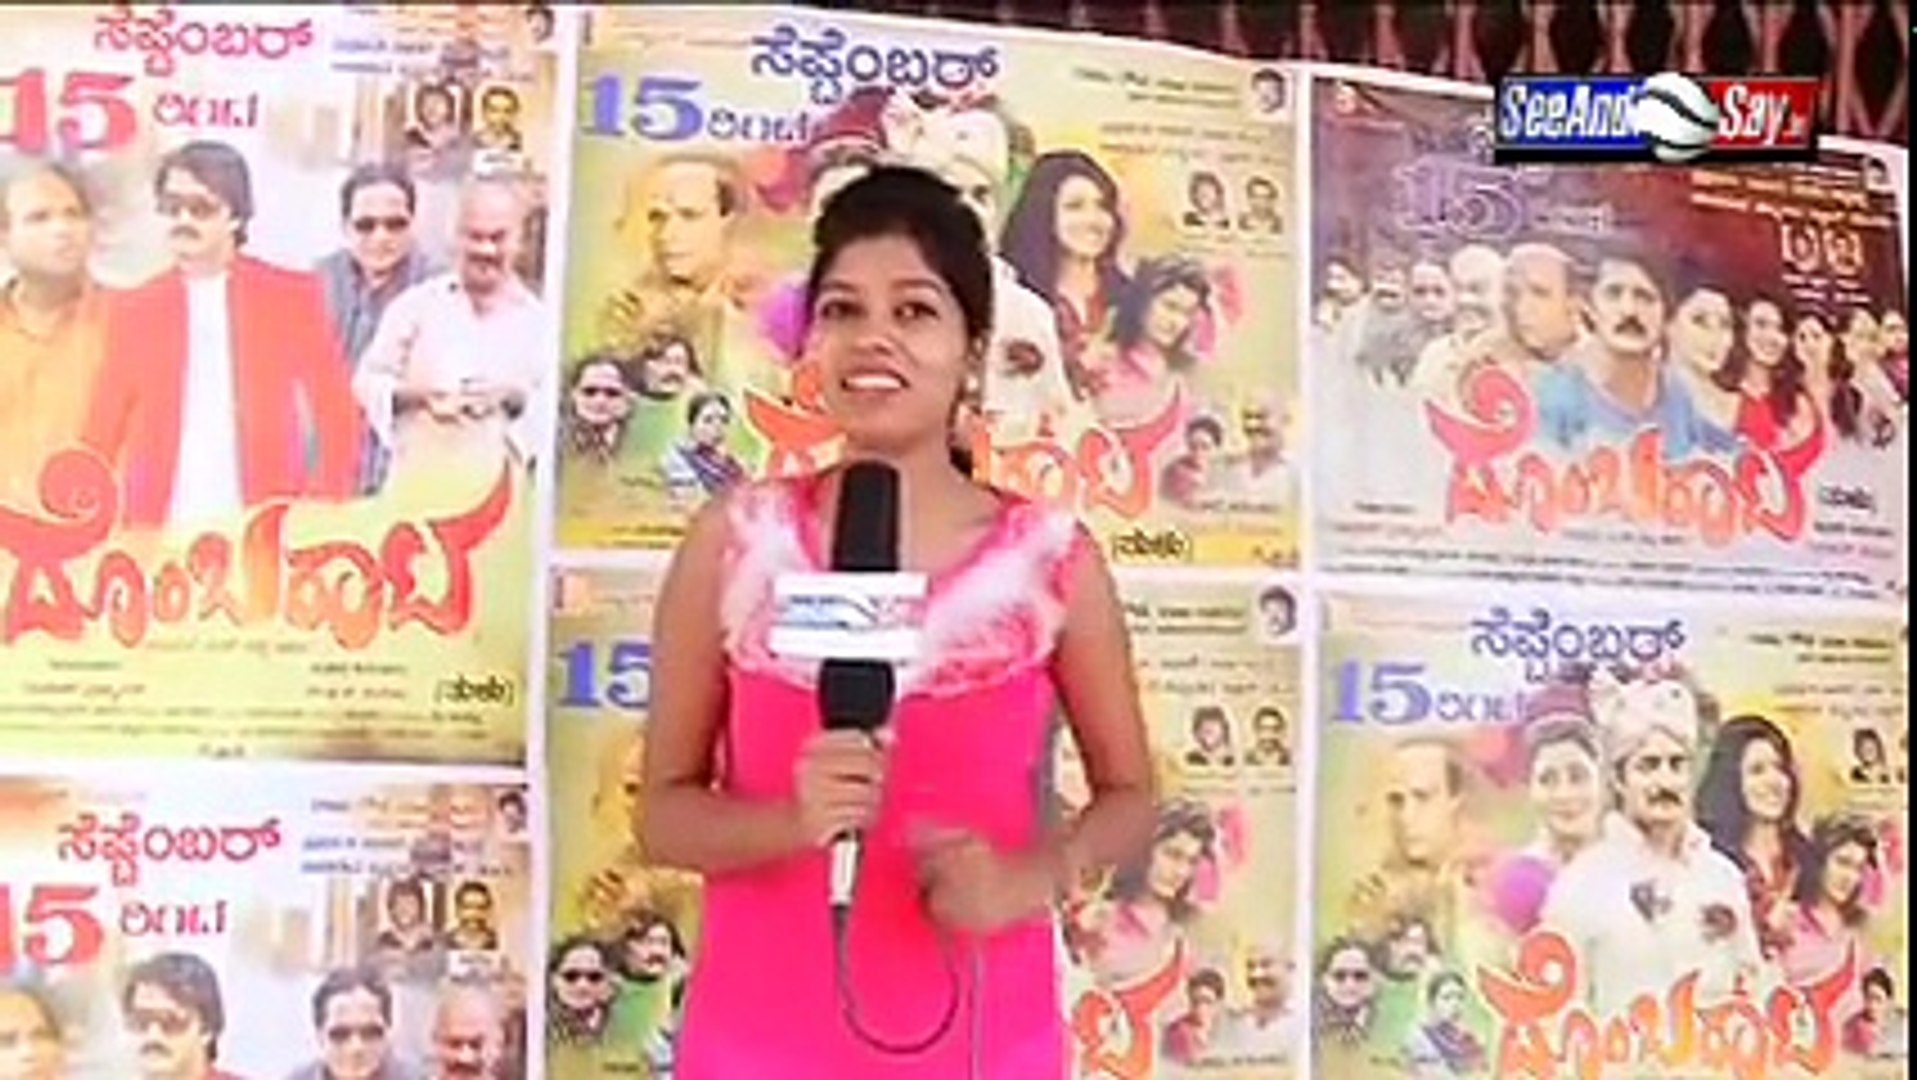 Dombarata -- Tulu Movie -- Released. A Big Thumbs Up From The Audience